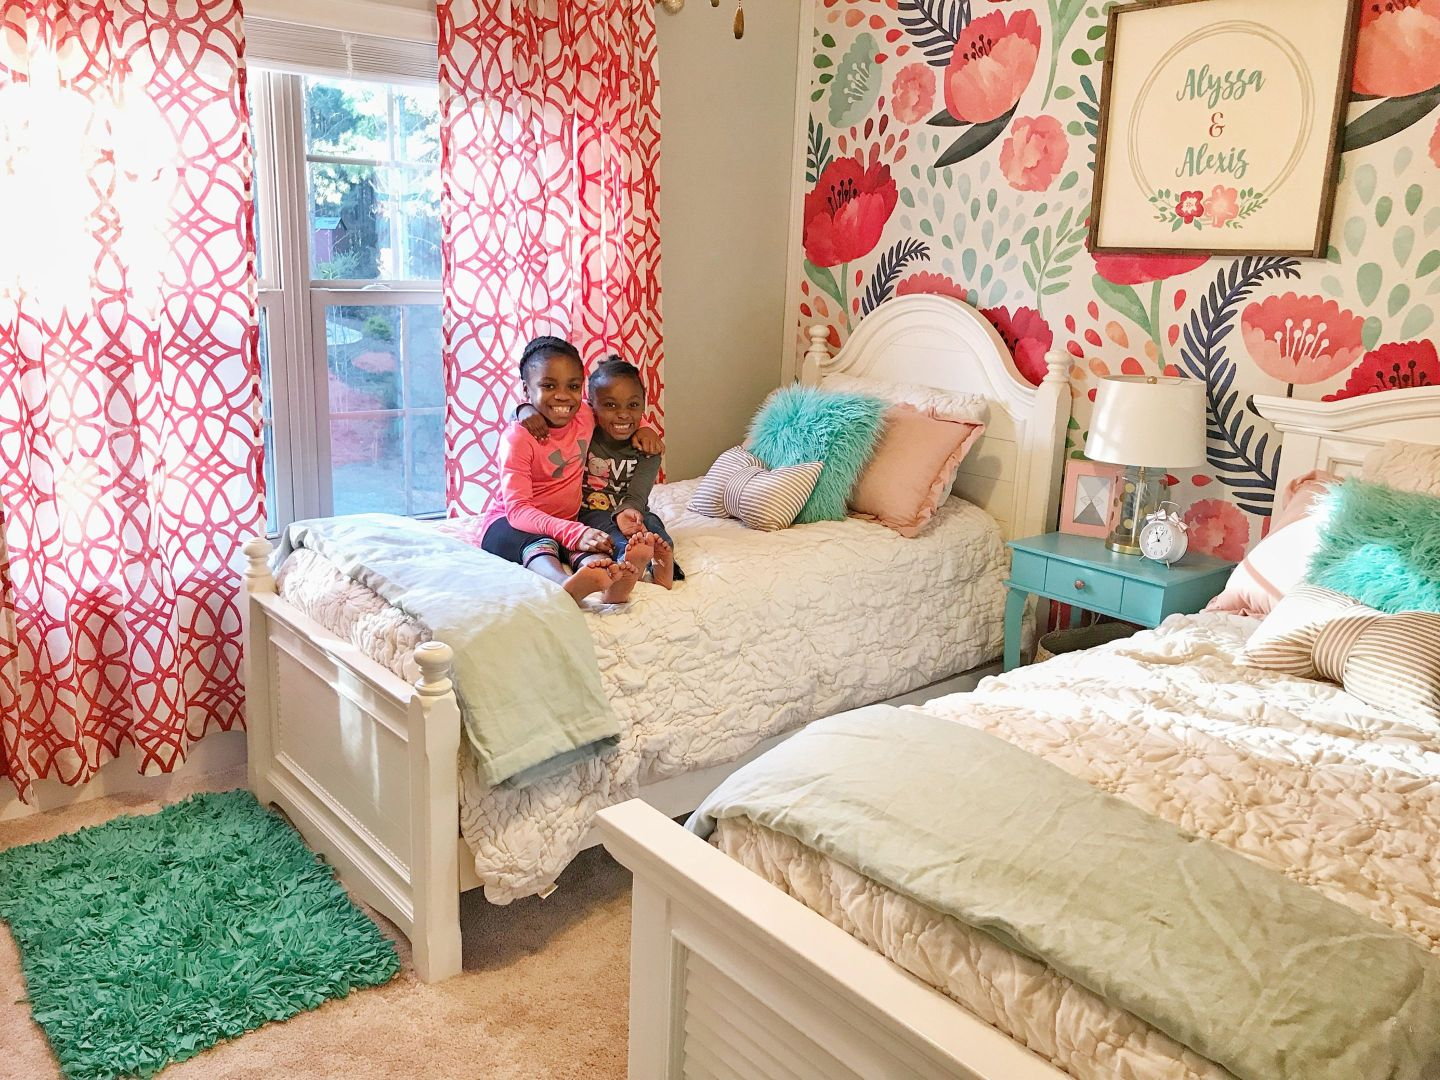 CCCQE5867-1440x1080 3 Tips on How to Decorate a Southern Girl's Room